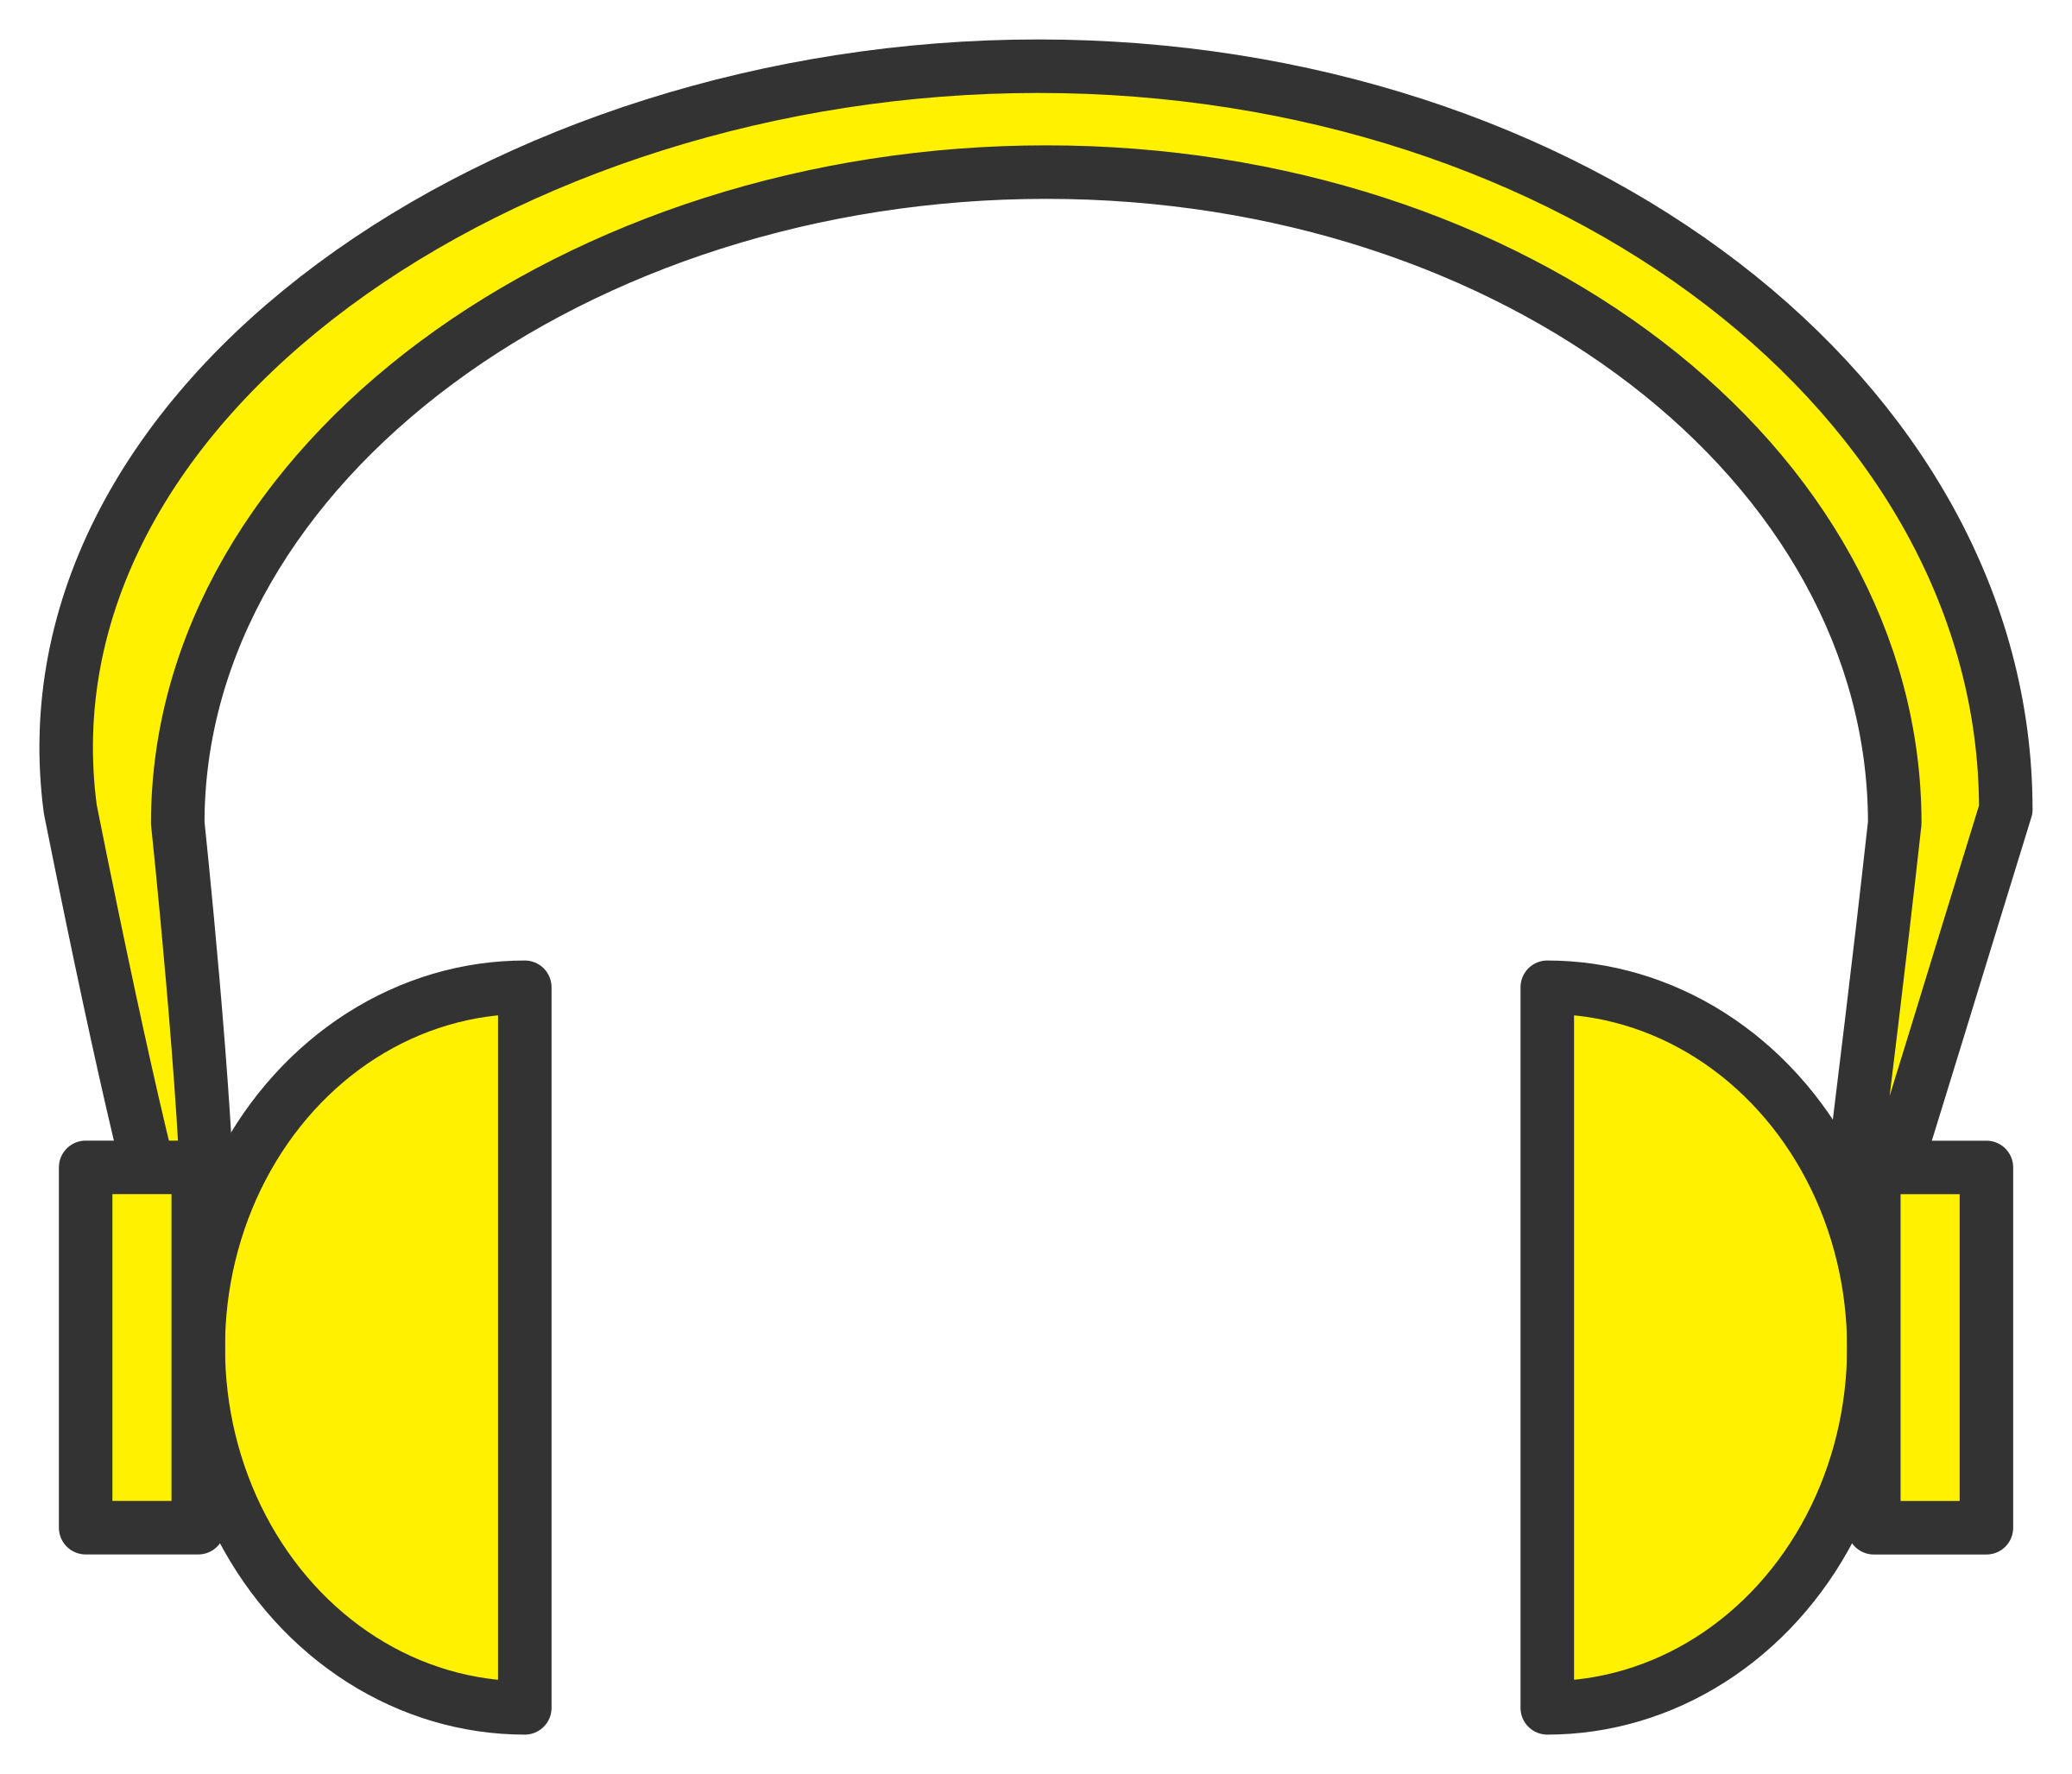 yellow headphone by Fabuio